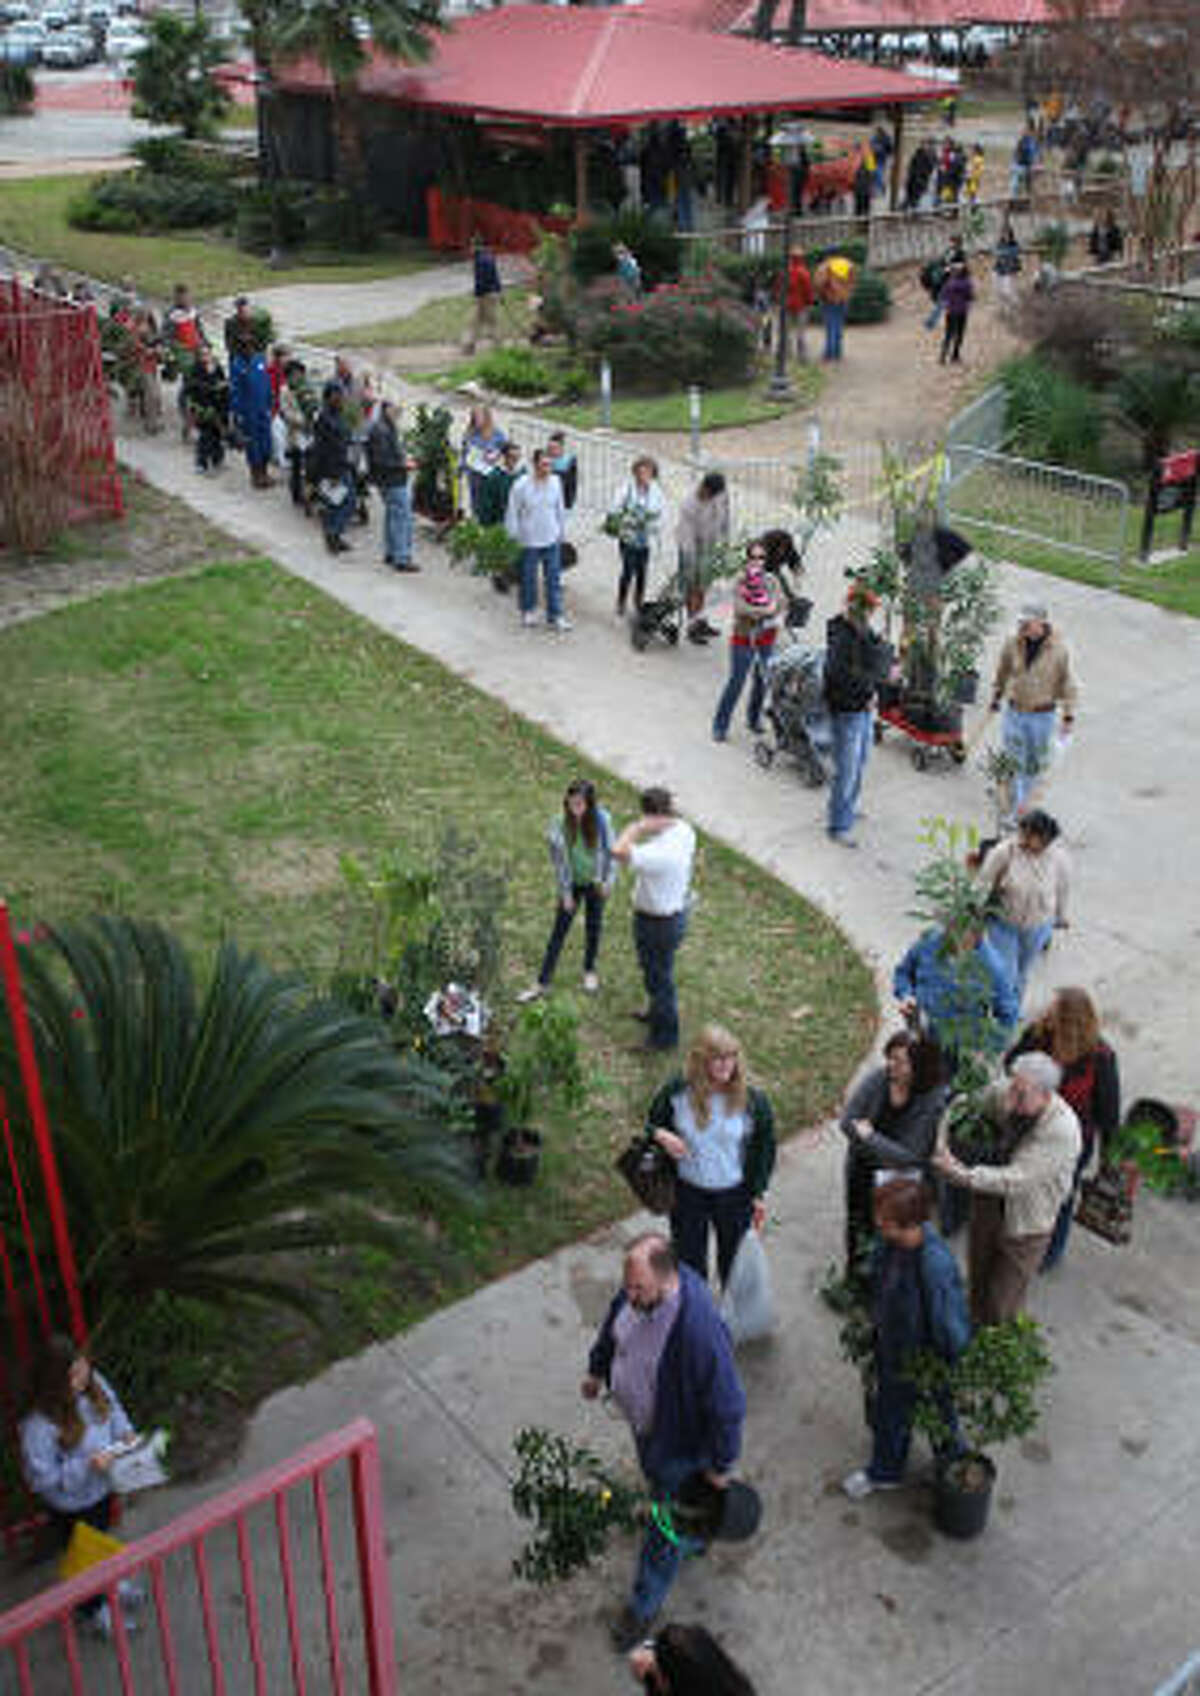 People interested in having their own fruit trees in their backyards show up to the Urban Harvest fruit sale despite cold at University of Houston Robertson Stadium.